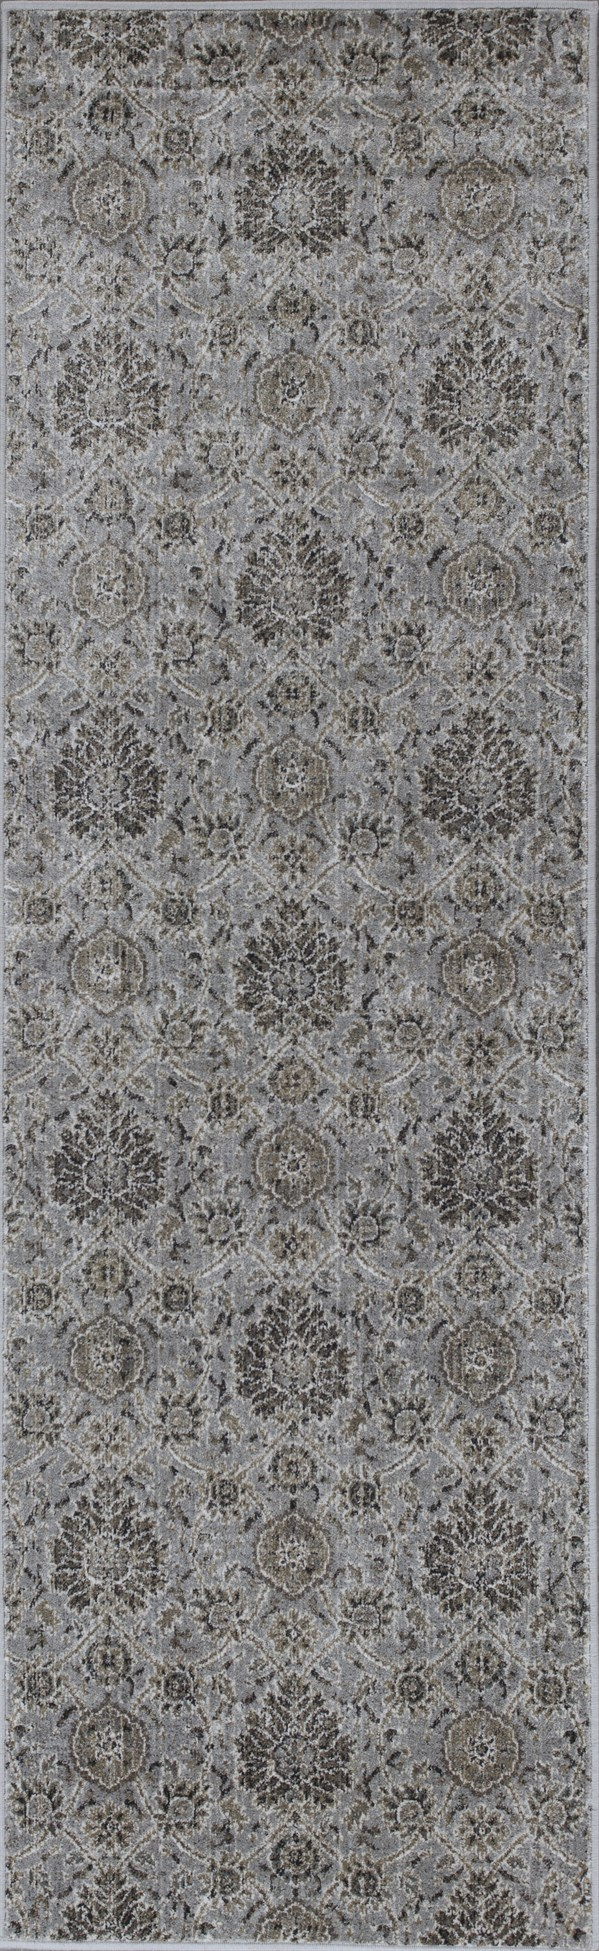 Silver (8605) Traditional / Oriental Area Rug